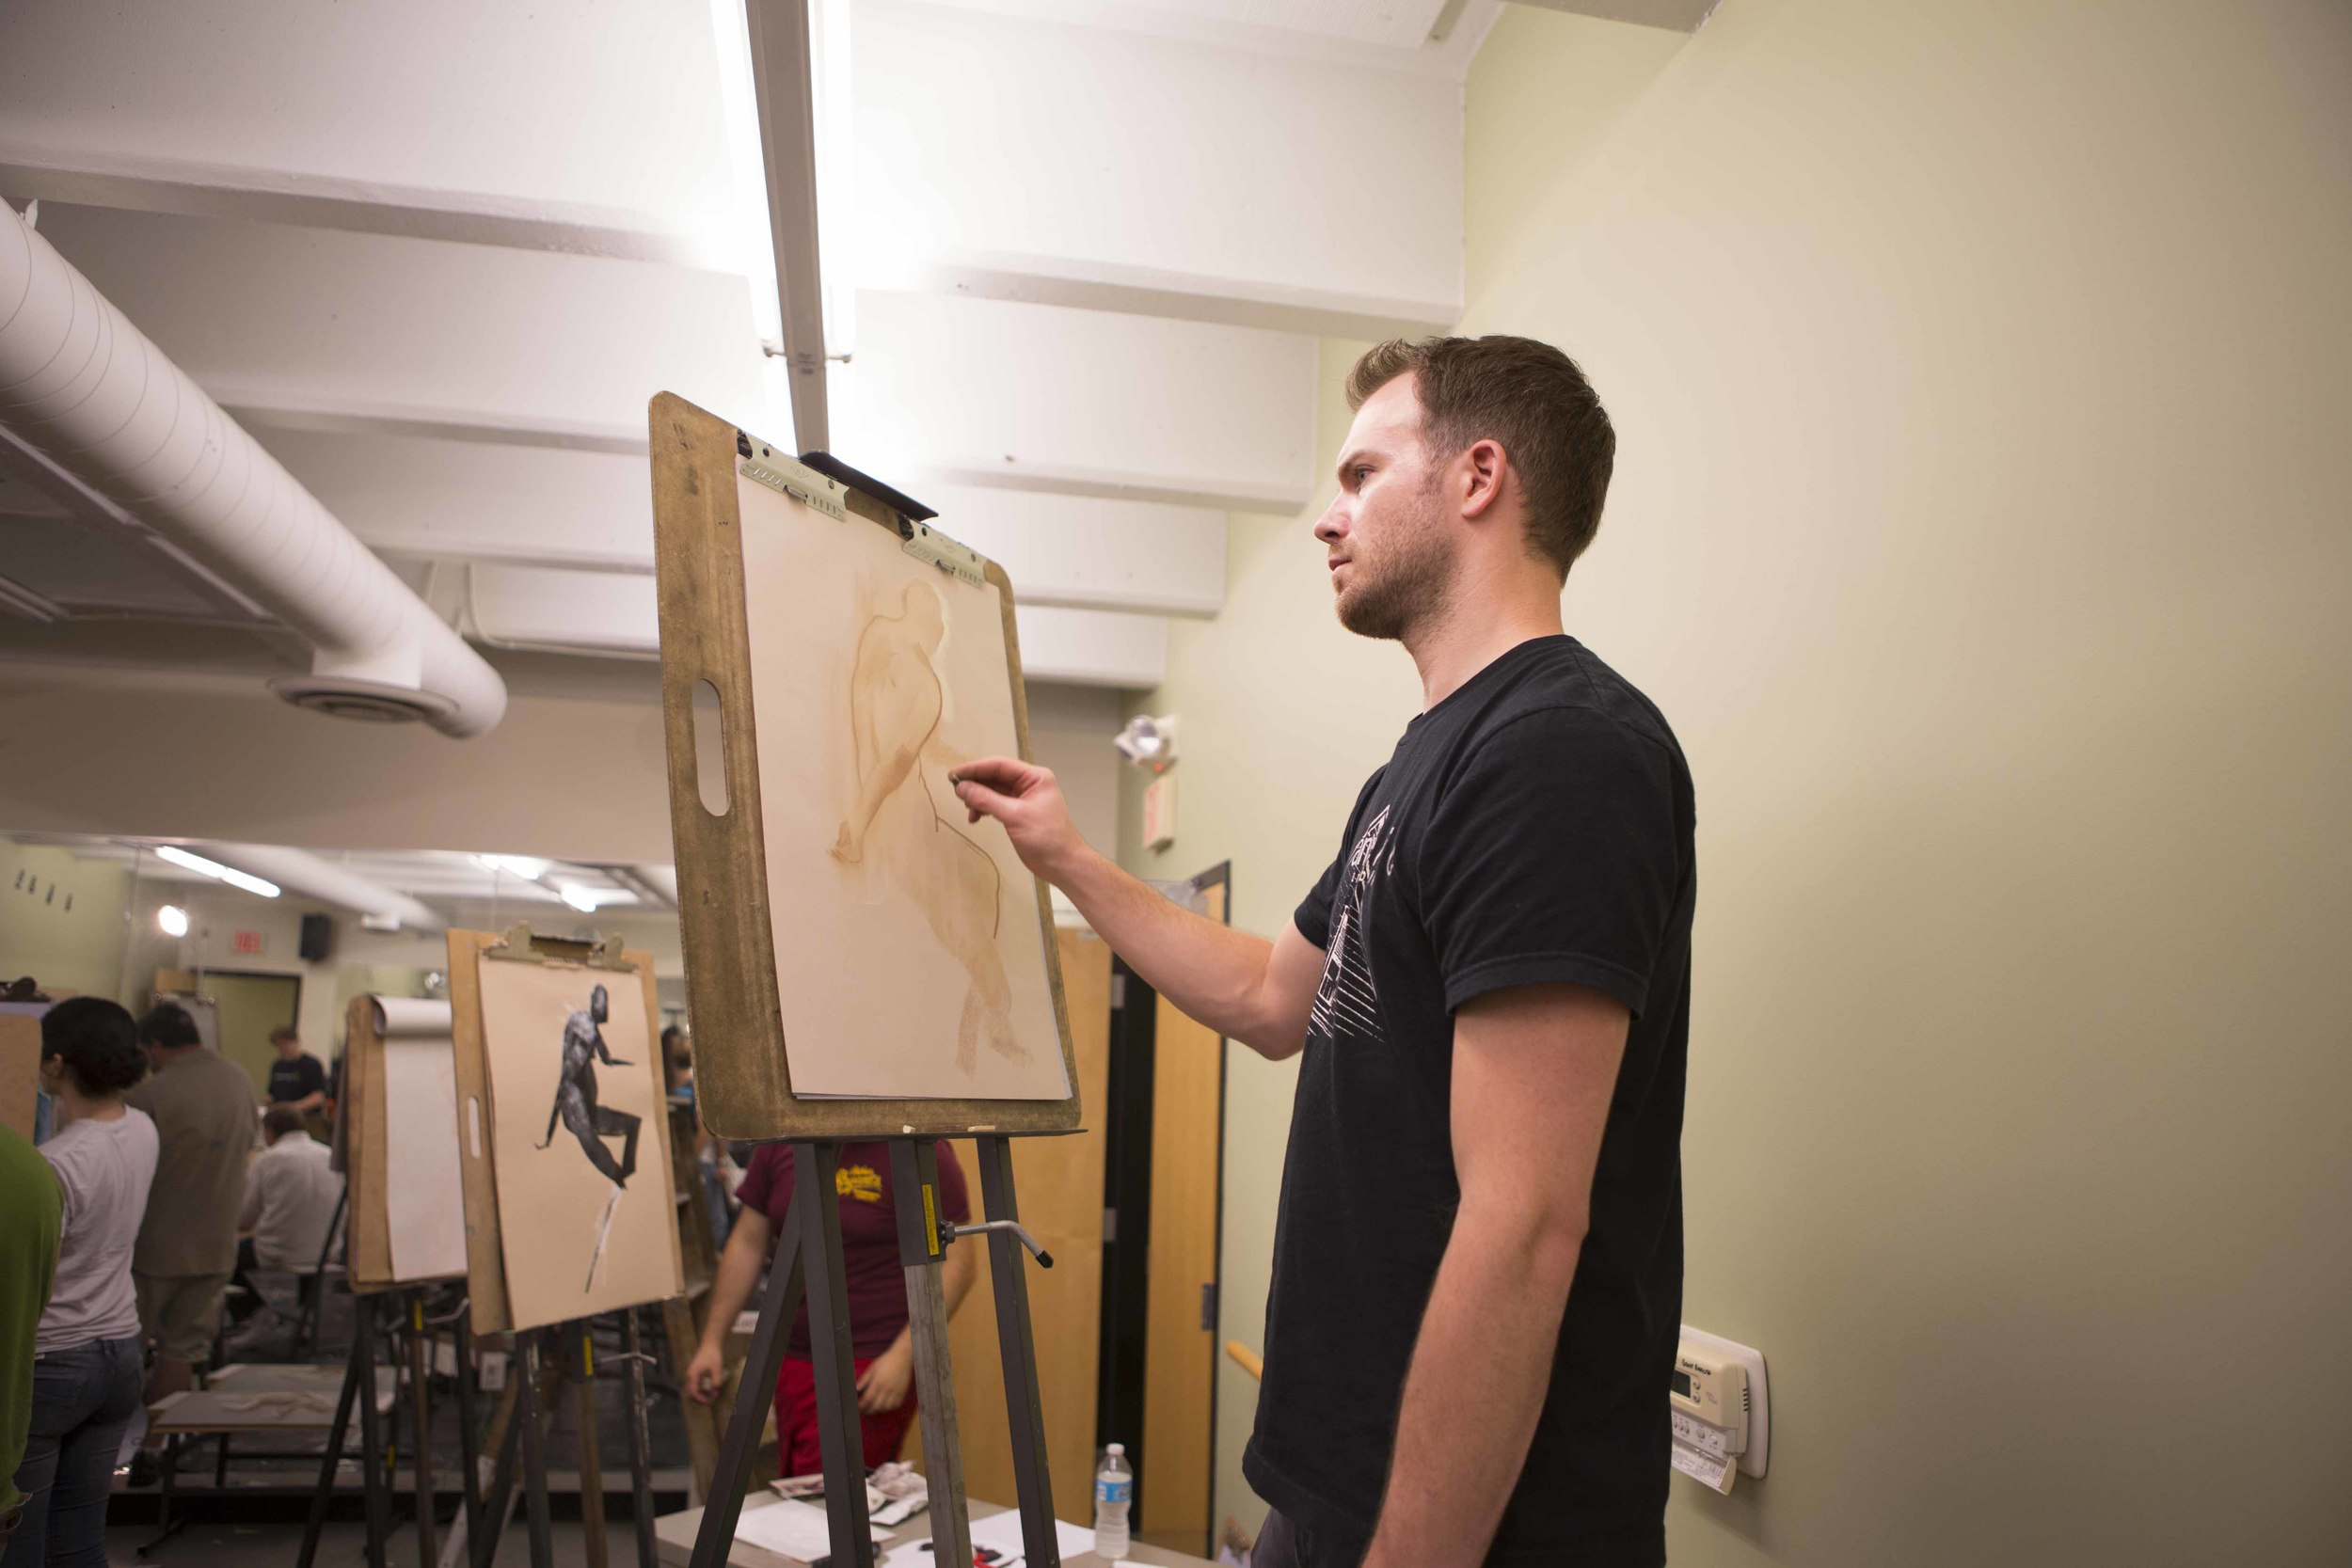 Ted attending figure drawing night at the Illustration Academy.